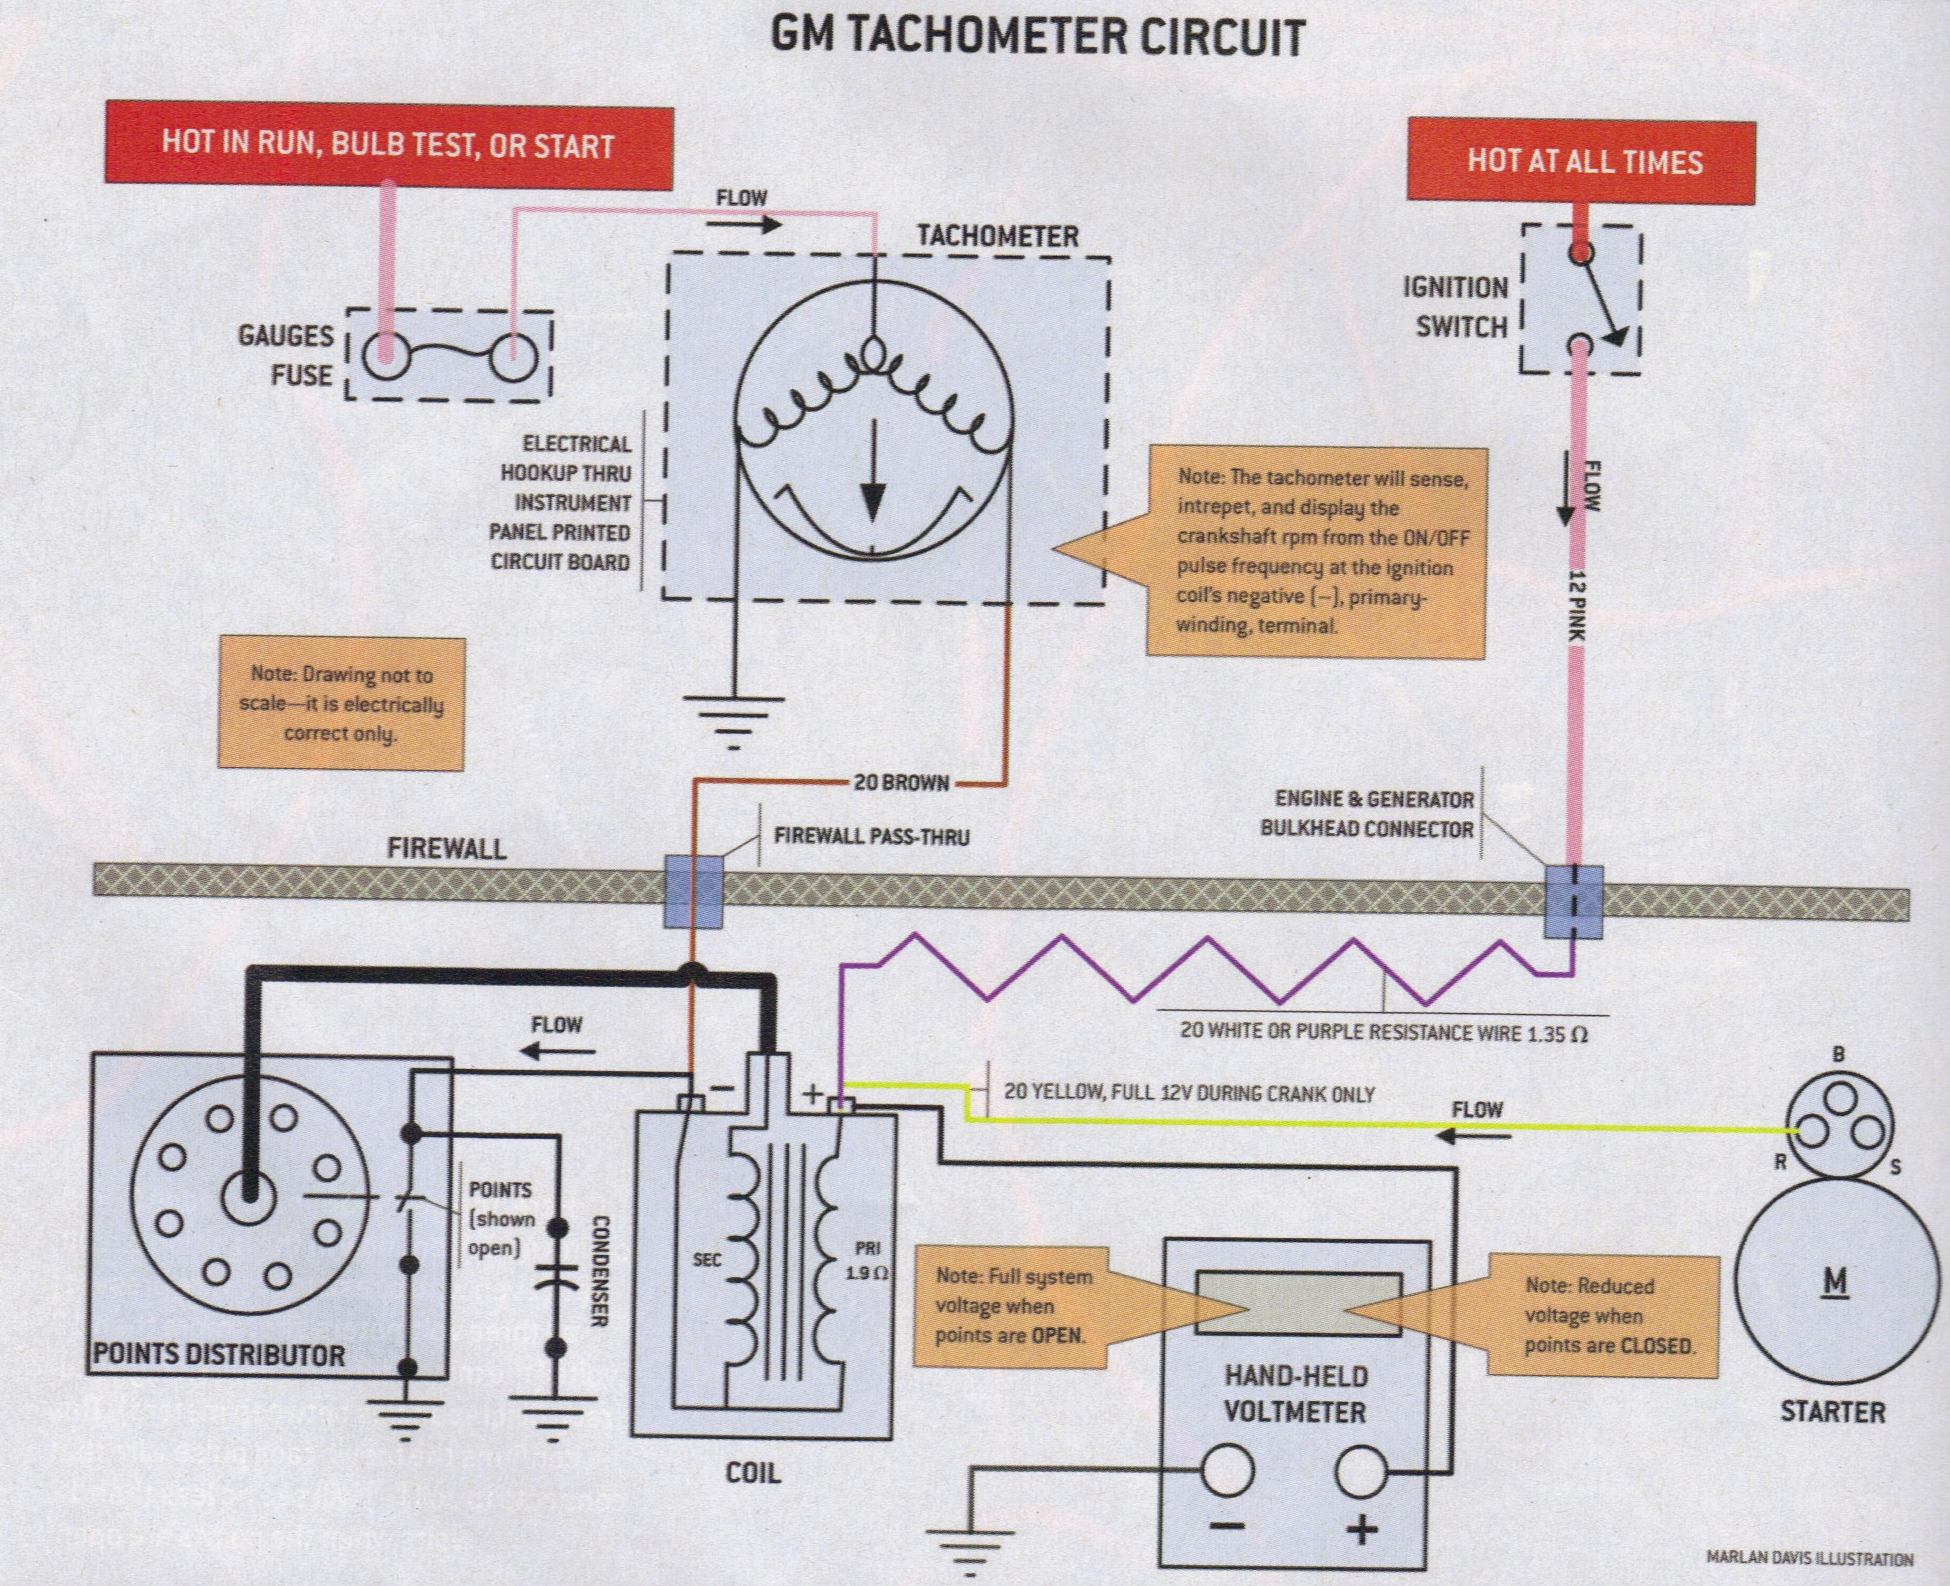 1972 Chevelle Wiring Diagram Pdf Electrical Panel Board